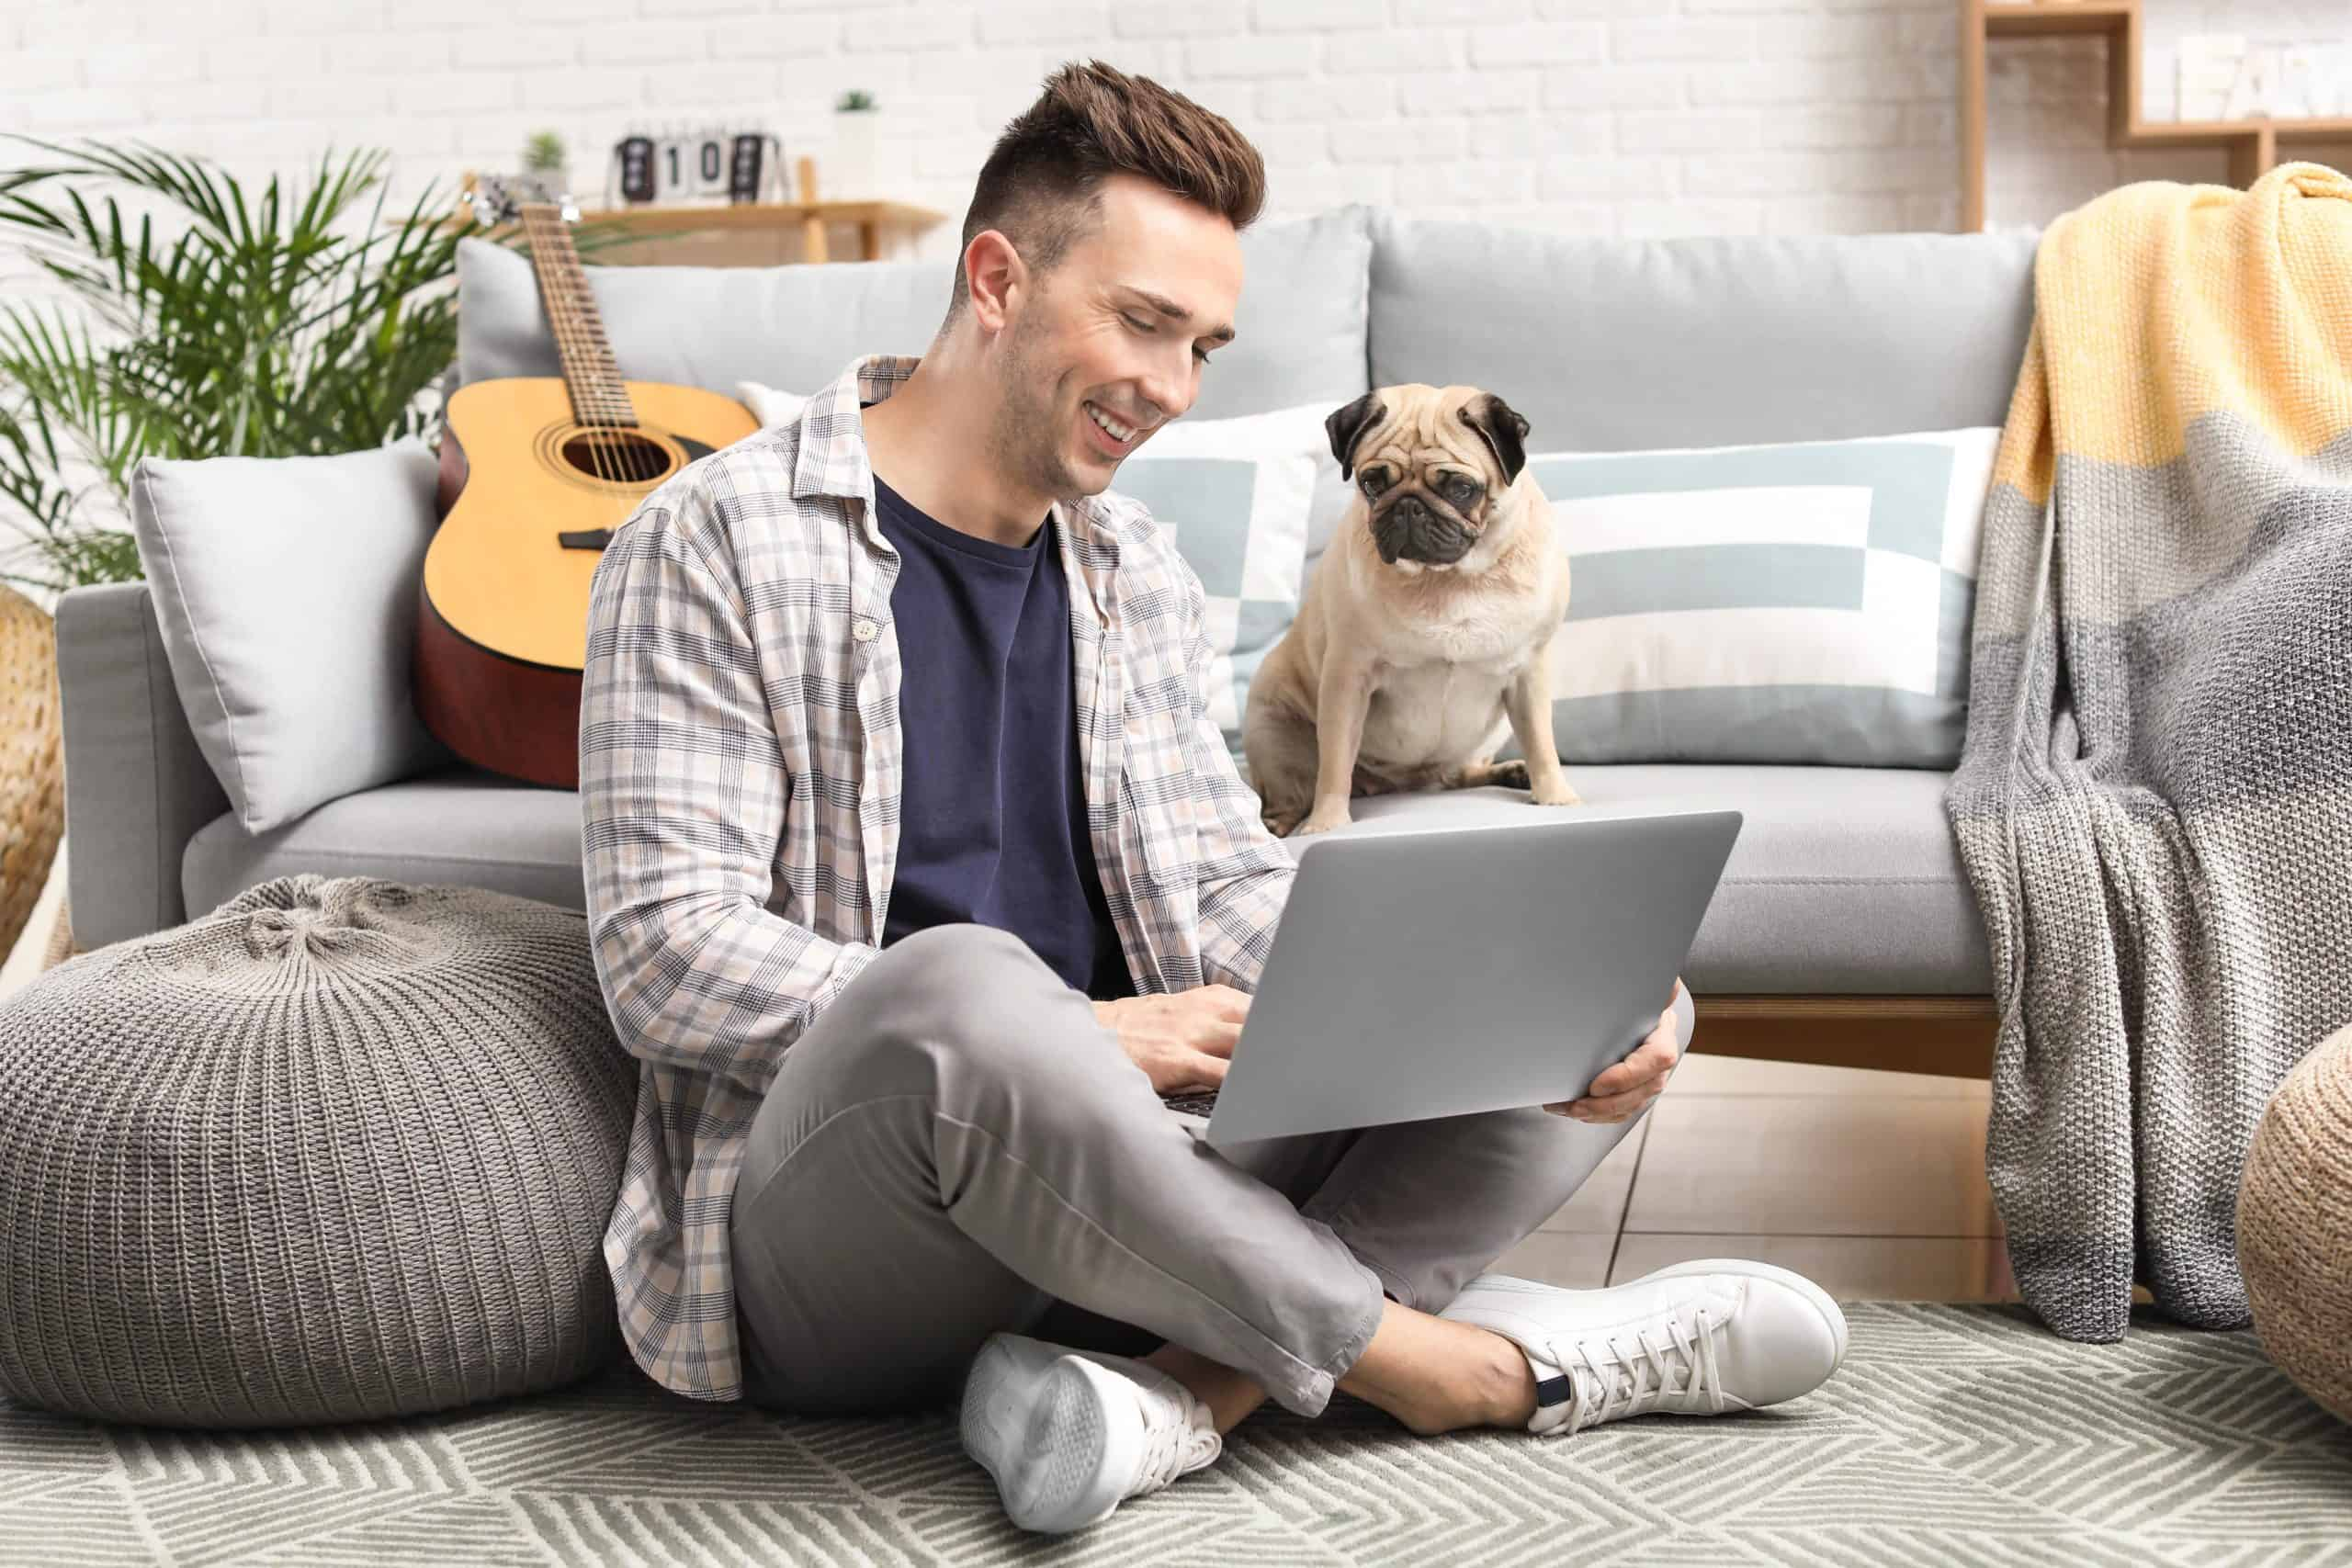 Man sits on floor while typing on his laptop as a Pug looks on. Having a dog helps you become more perceptive.